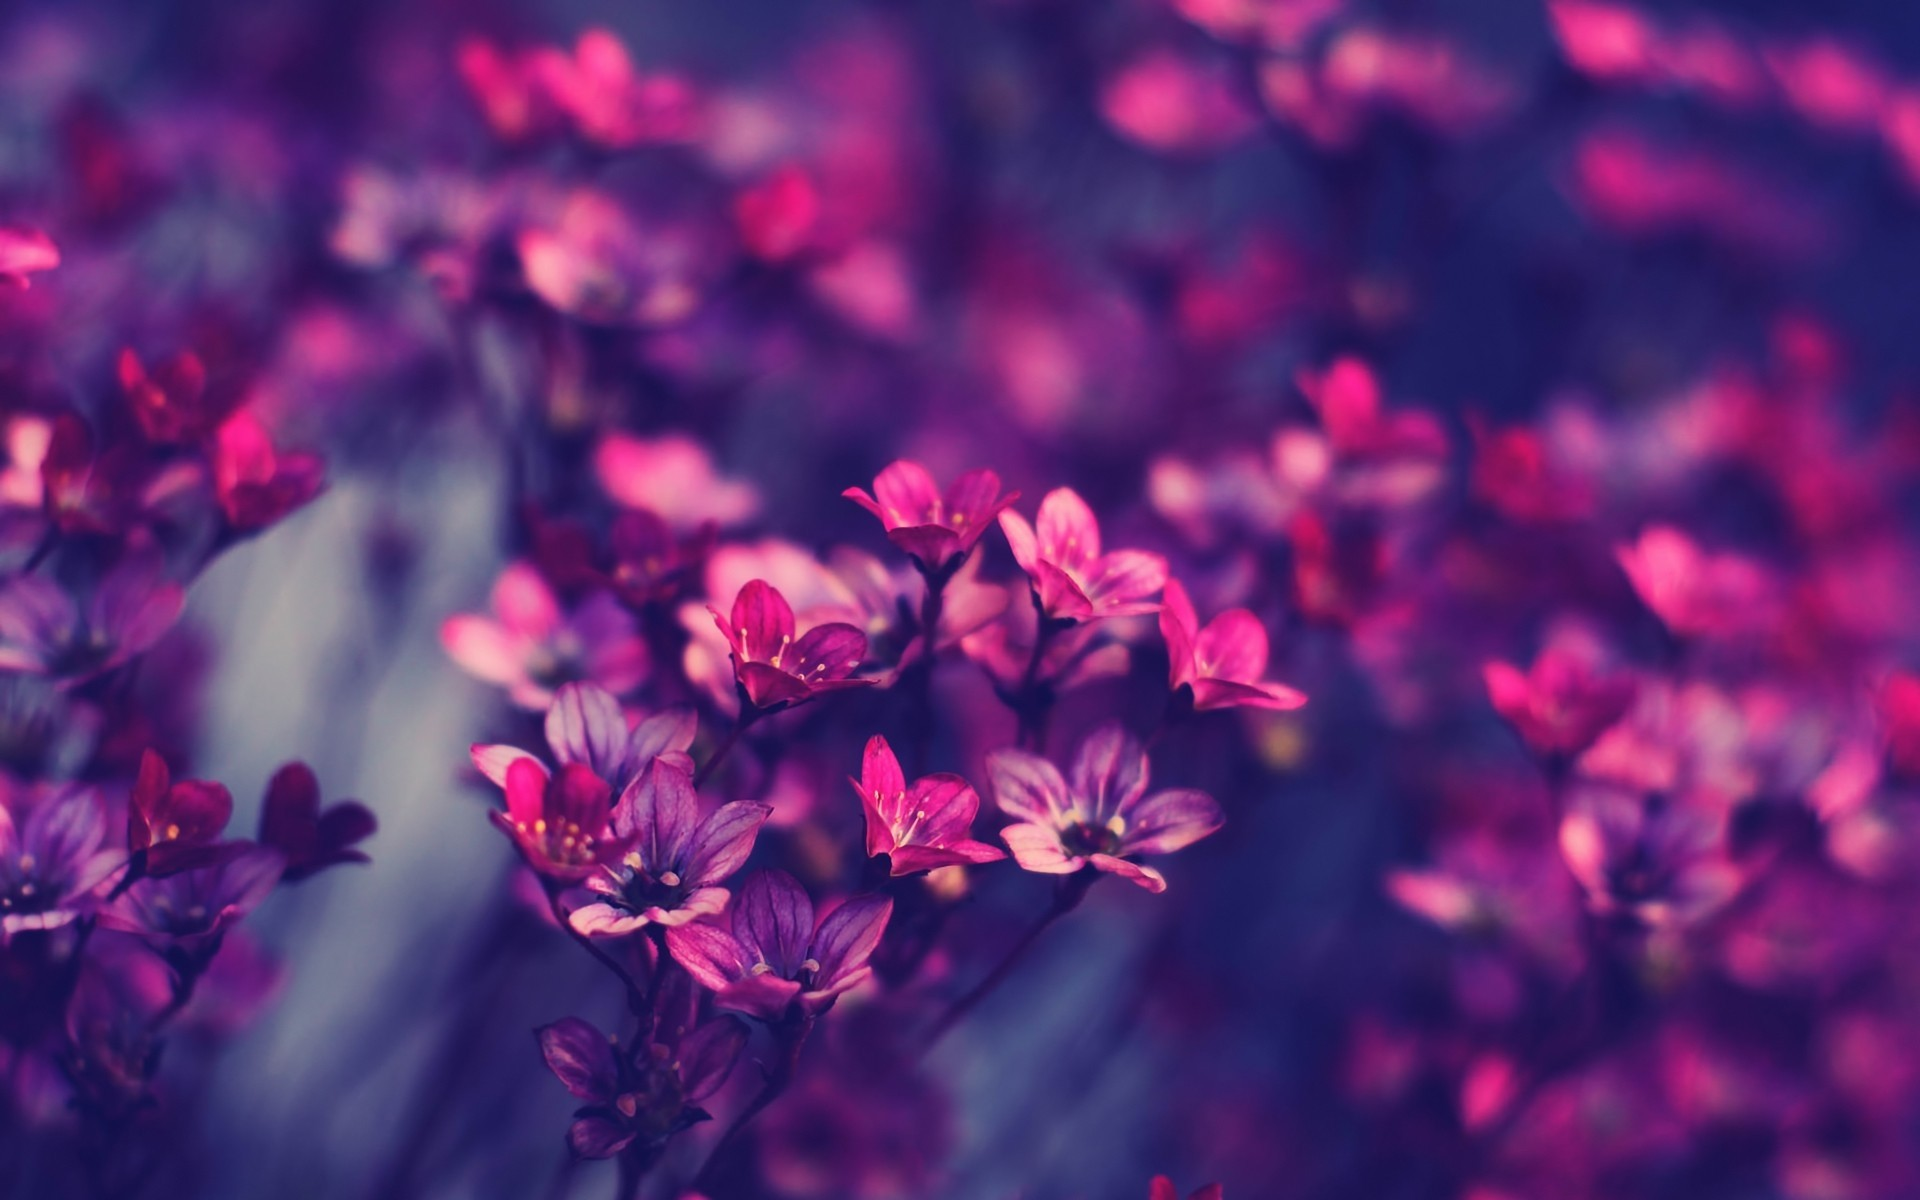 Aesthetic Background Tumblr Download Free Awesome Hd